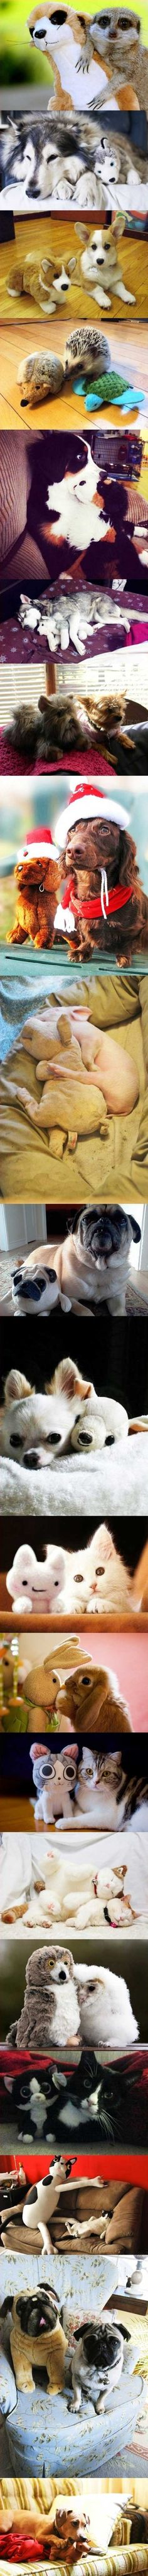 Animals and their stuffed friends. I need to get Einstein a stuffed toy like this <3